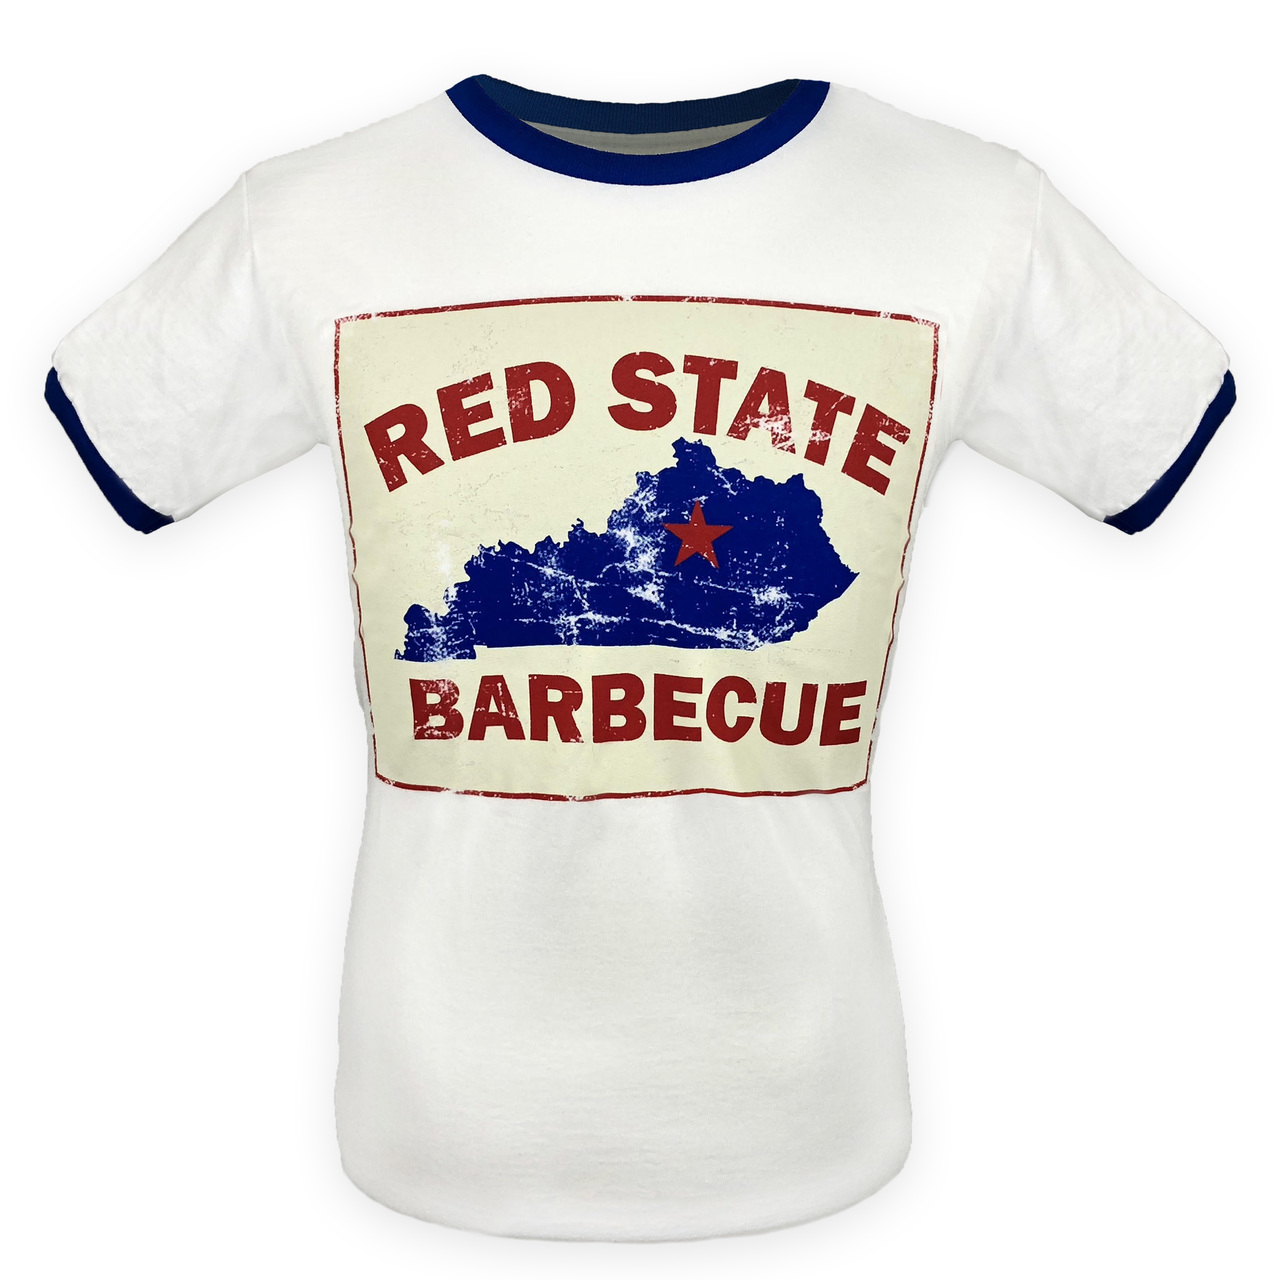 Red State BBQ T-shirt with Retro logo.